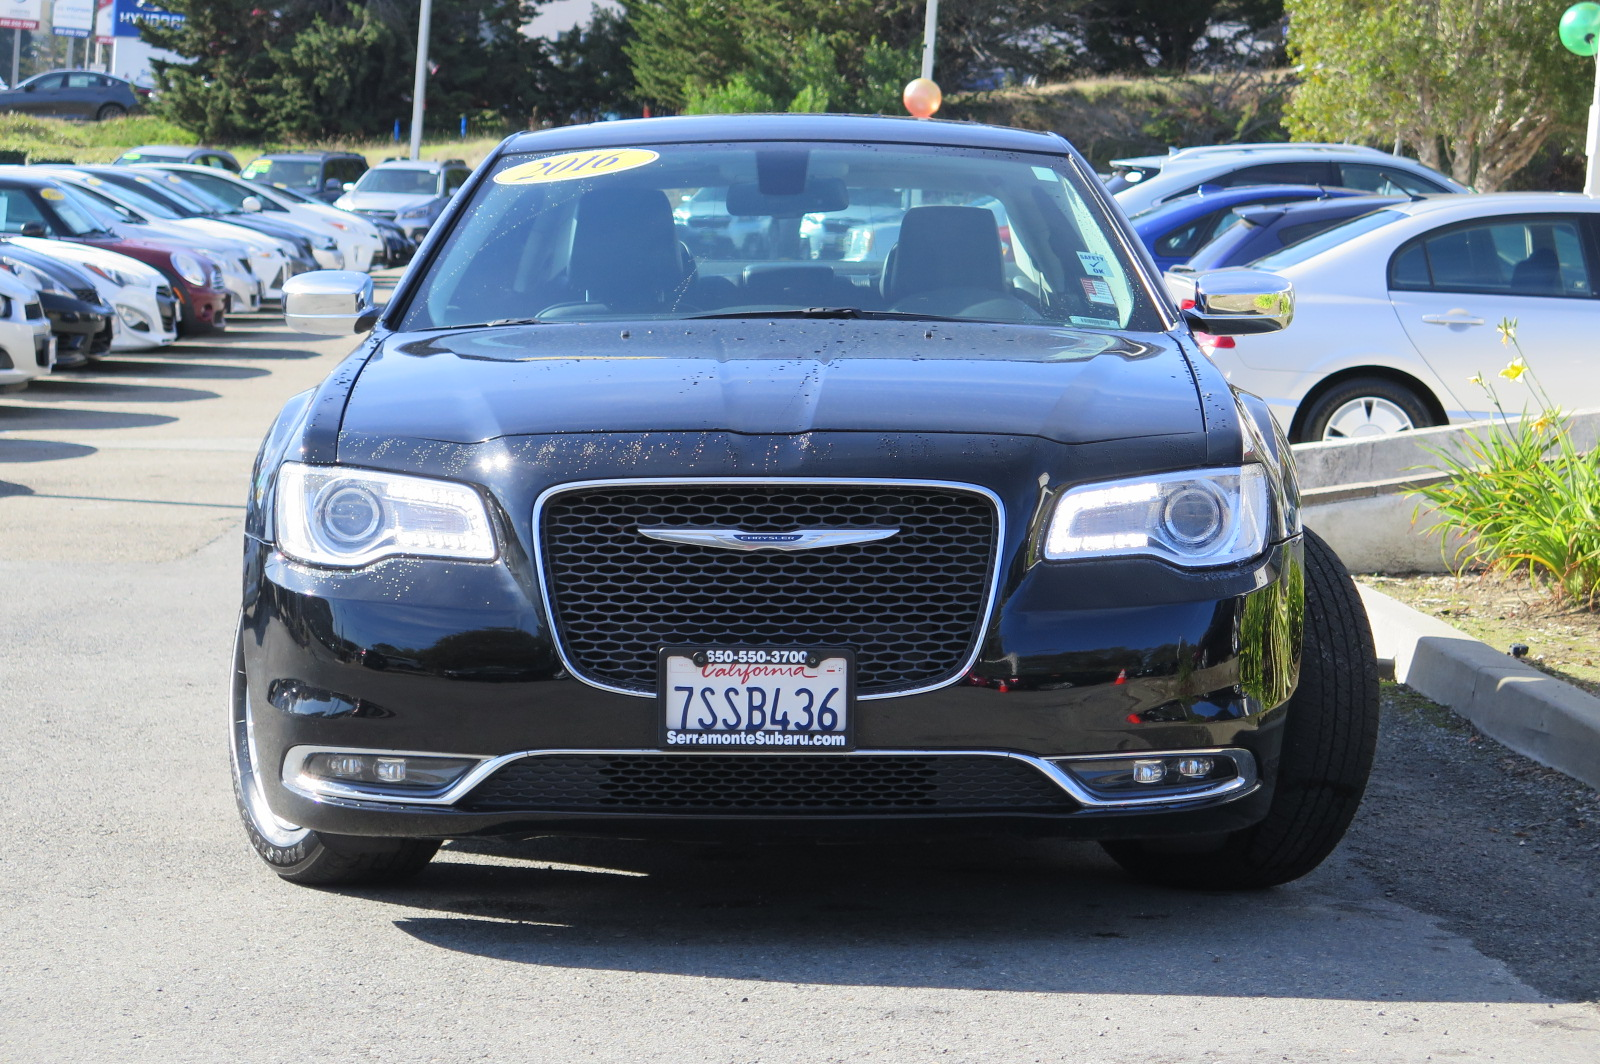 2016 CHRYSLER 300 300C SEDAN black v6 36 liter automatic check out our 1 owner 16 300c  this